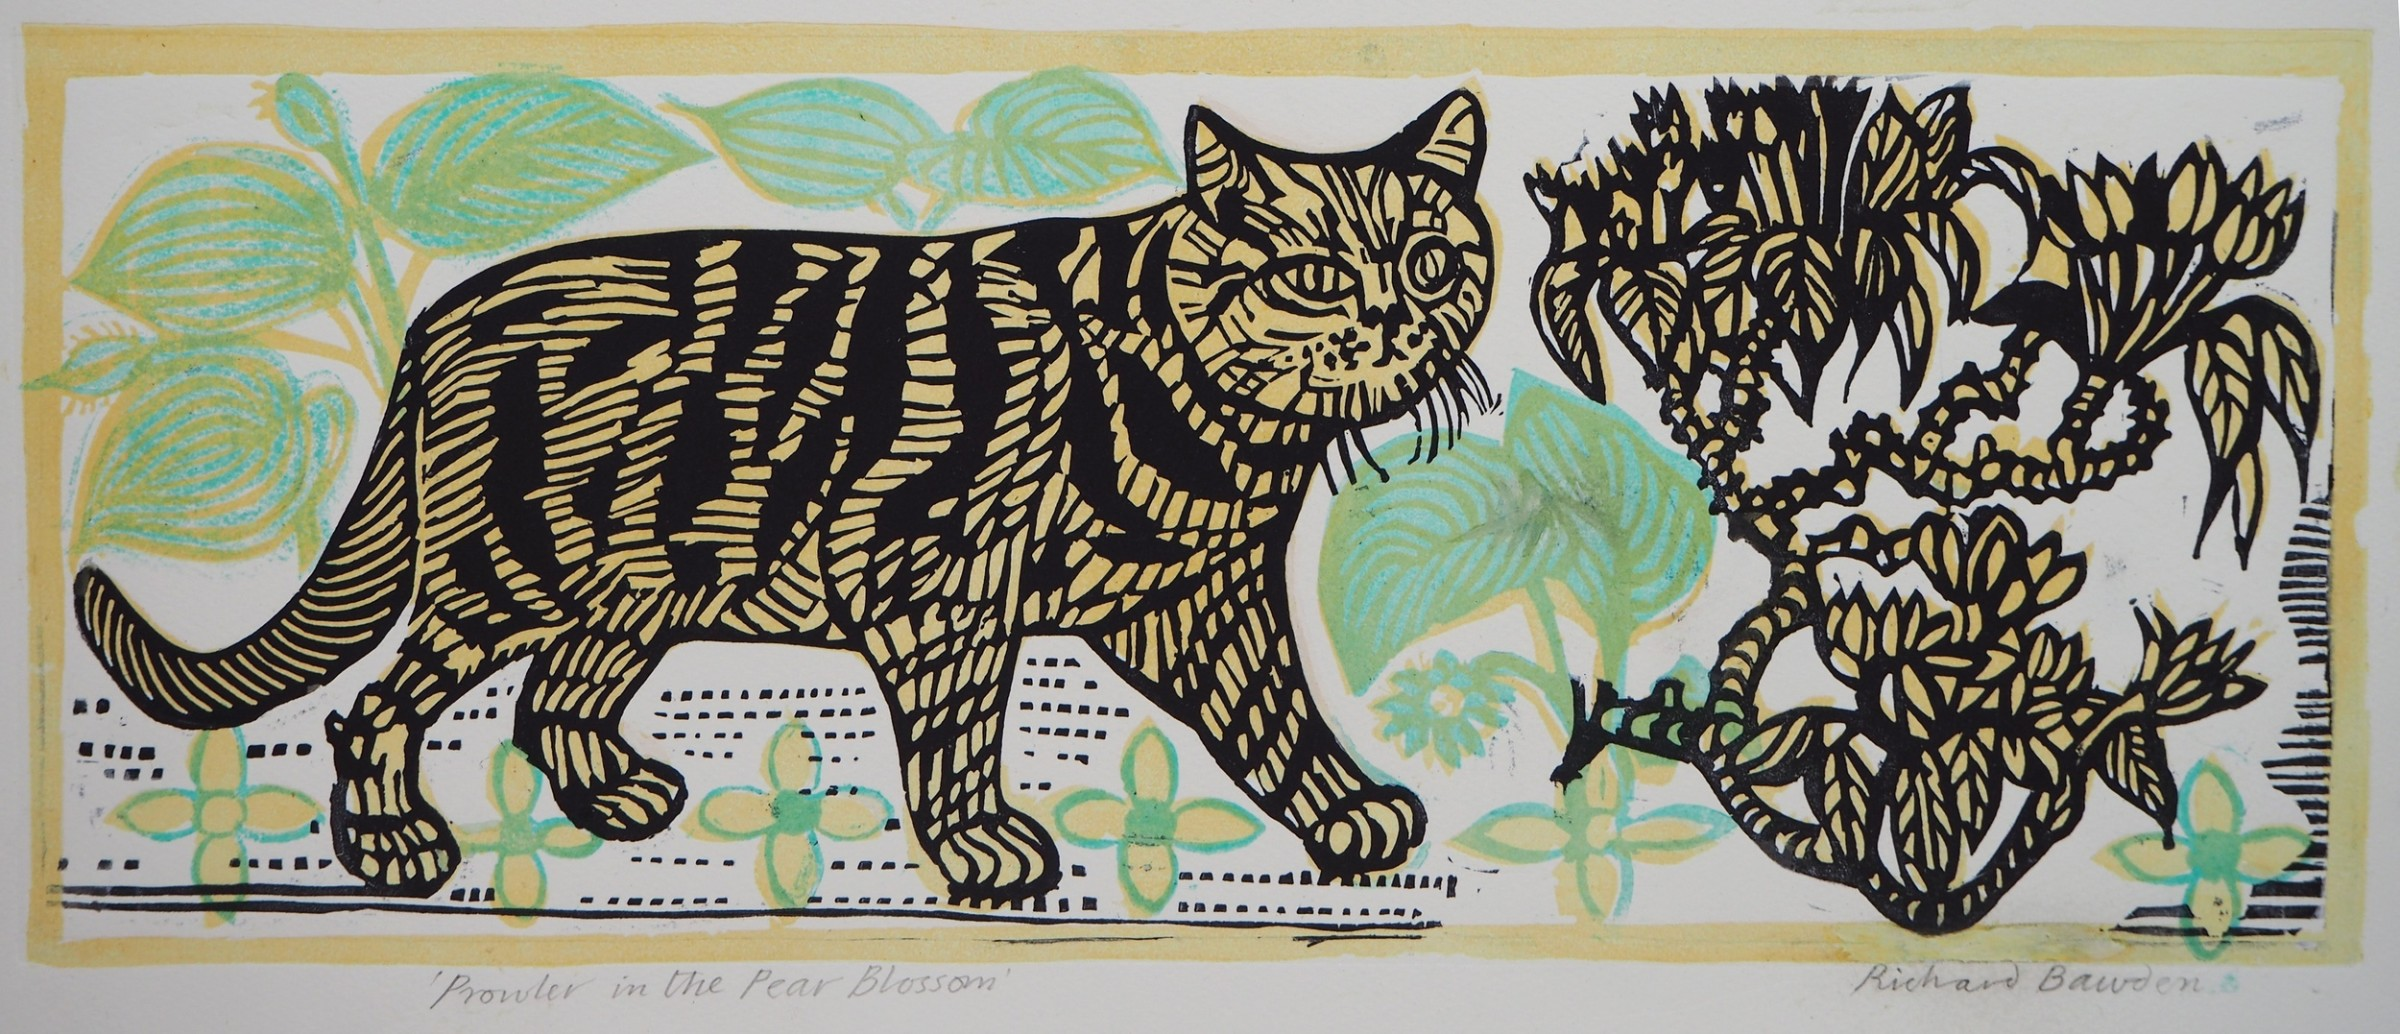 "<span class=""link fancybox-details-link""><a href=""/exhibitions/18/works/image_standalone957/"">View Detail Page</a></span><p>Richard Bawden RWS RE</p><p>Prowler in the Pear Blossom</p><p>linocut</p><p>44 x 72cm</p><p>£325 framed</p><p>£260 unframed</p>"